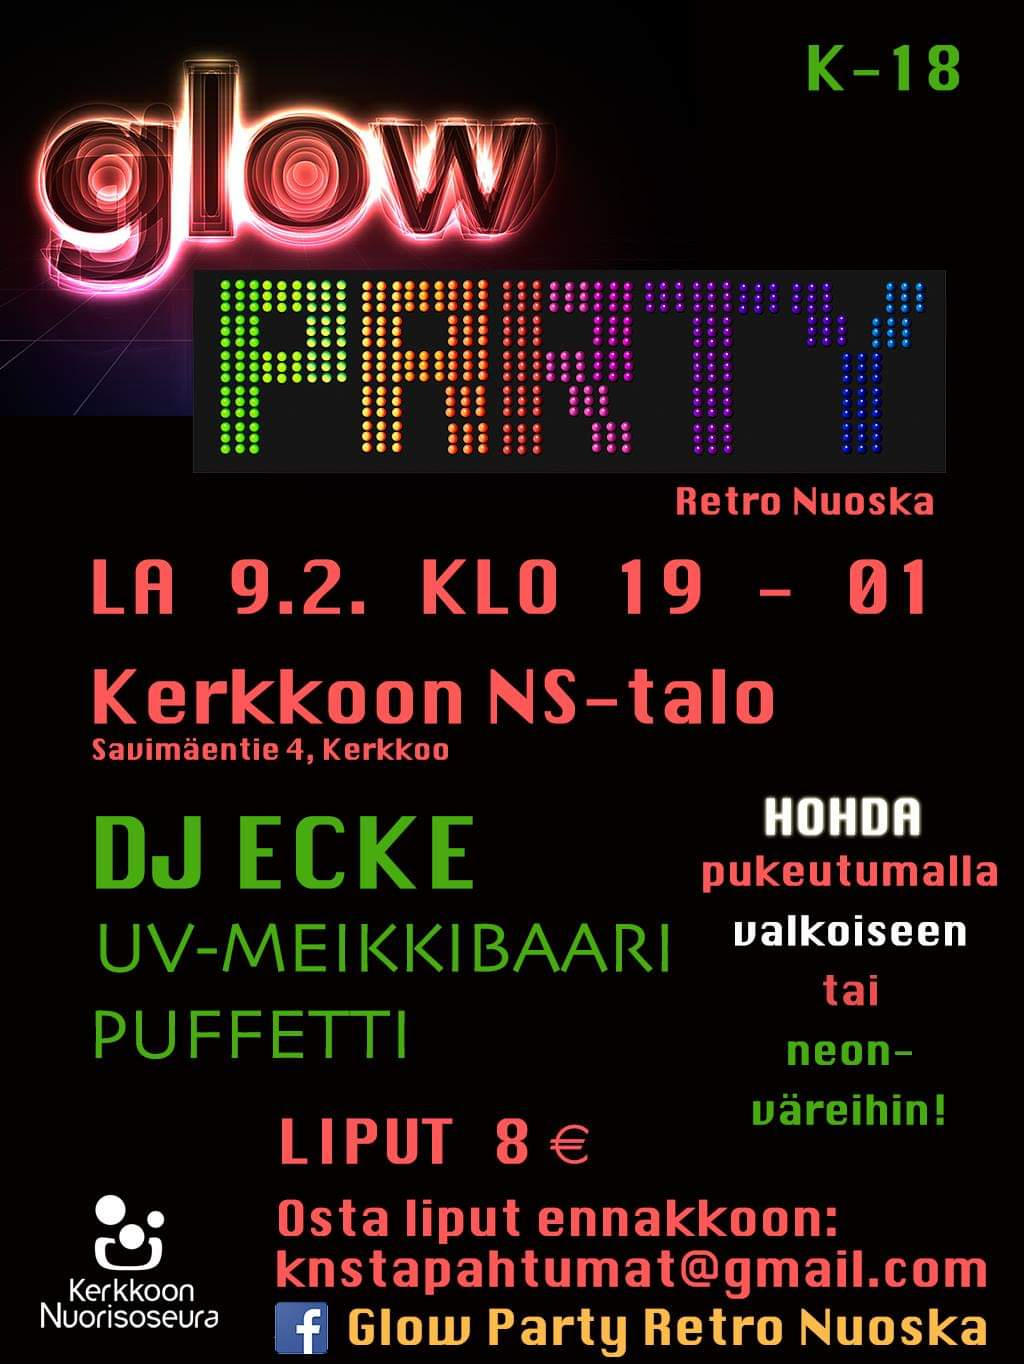 Glow_Party_Retro_Nuoska_mainos.jpg